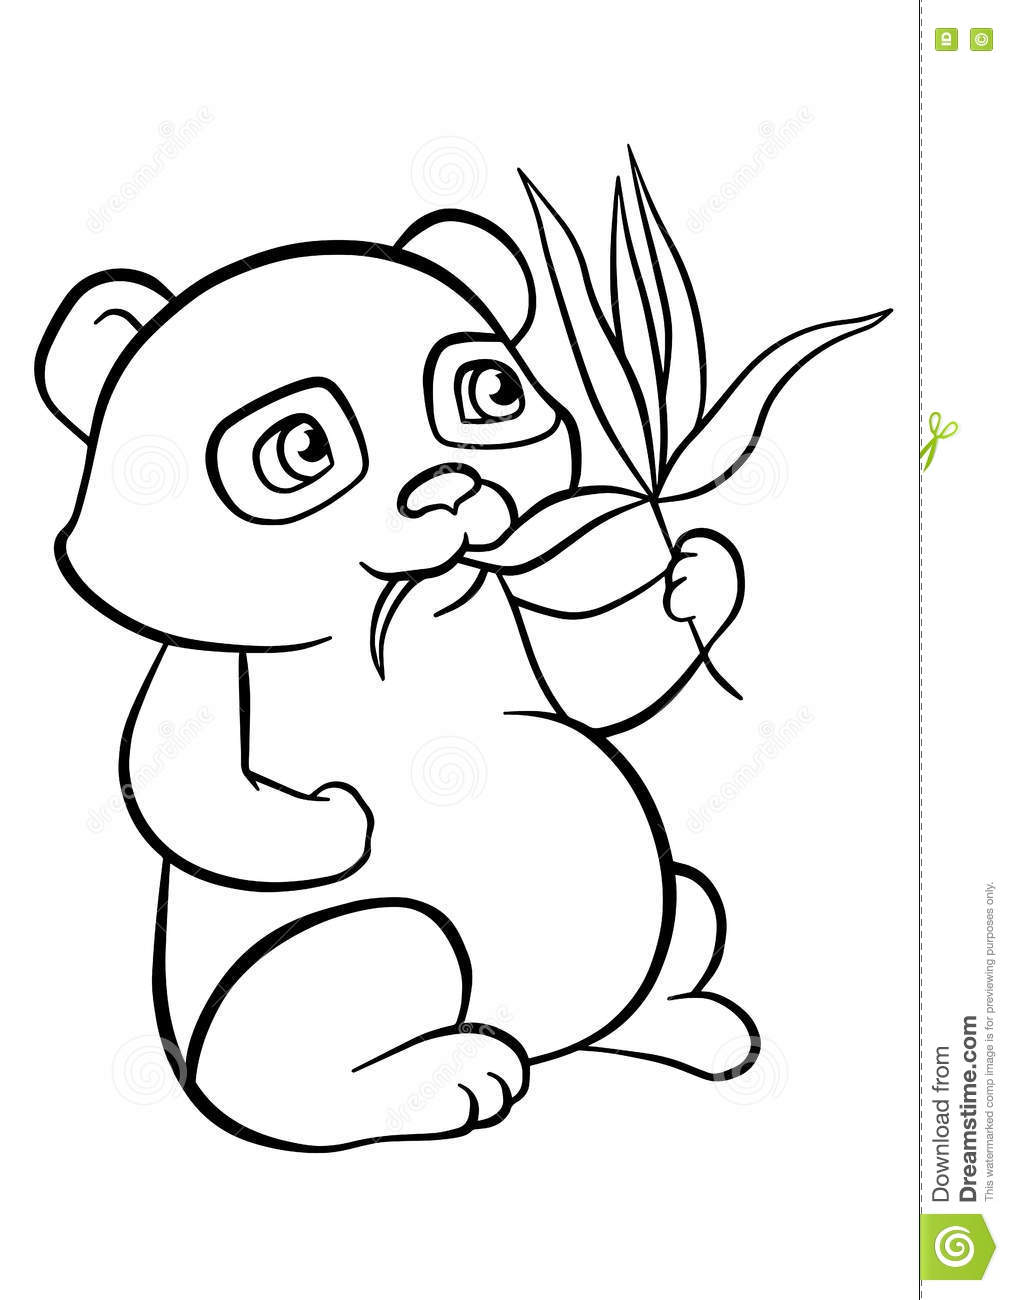 Coloring pages little cute panda stock vector illustration of